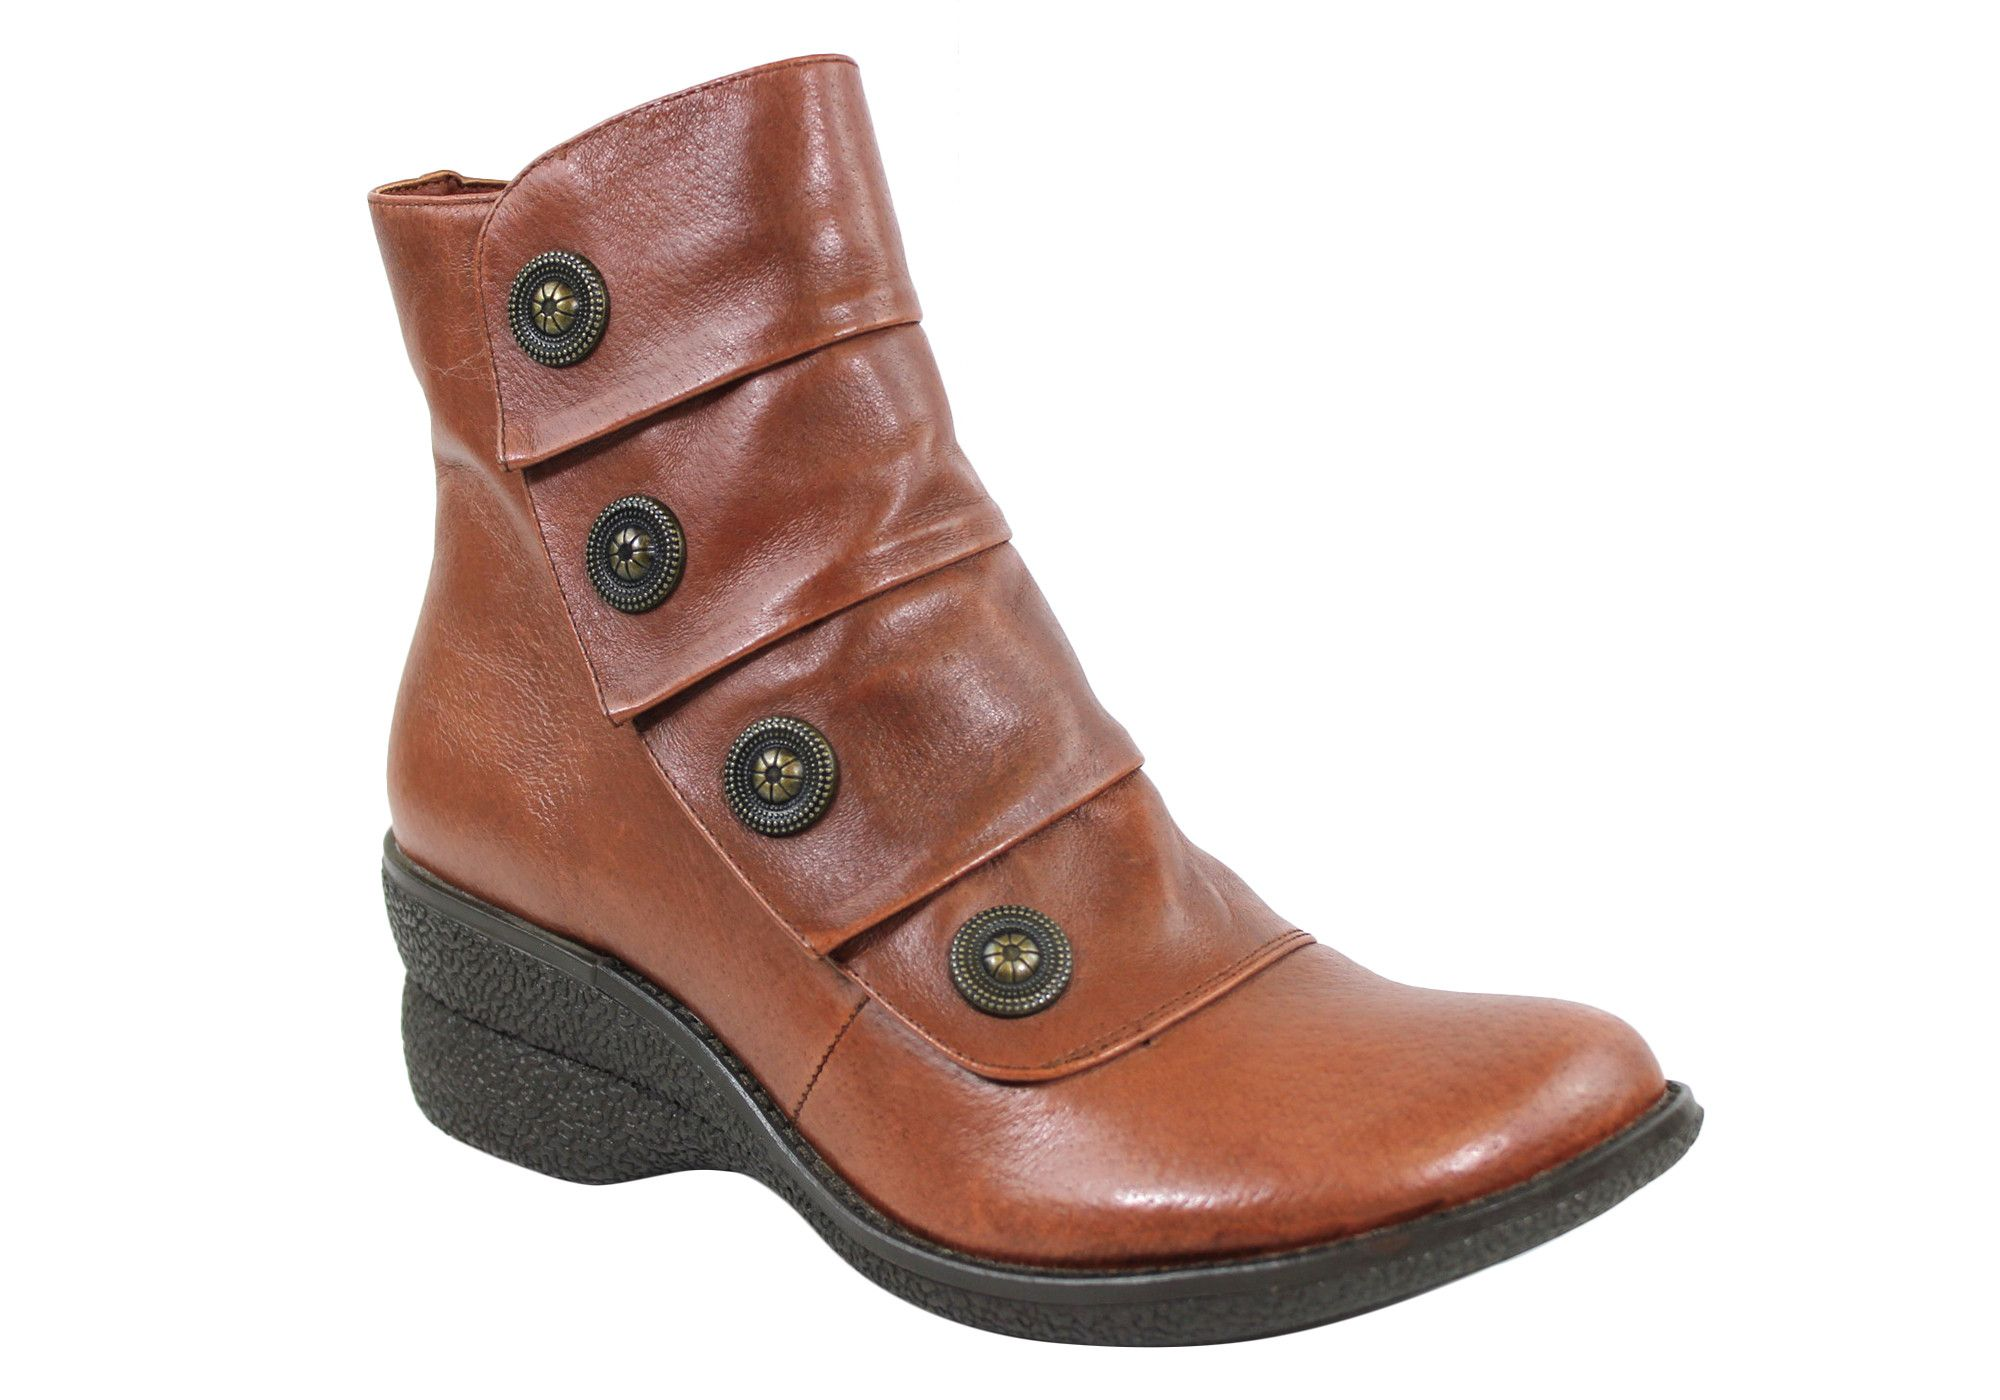 Miz Mooz Ora Womens Leather Ankle Boots